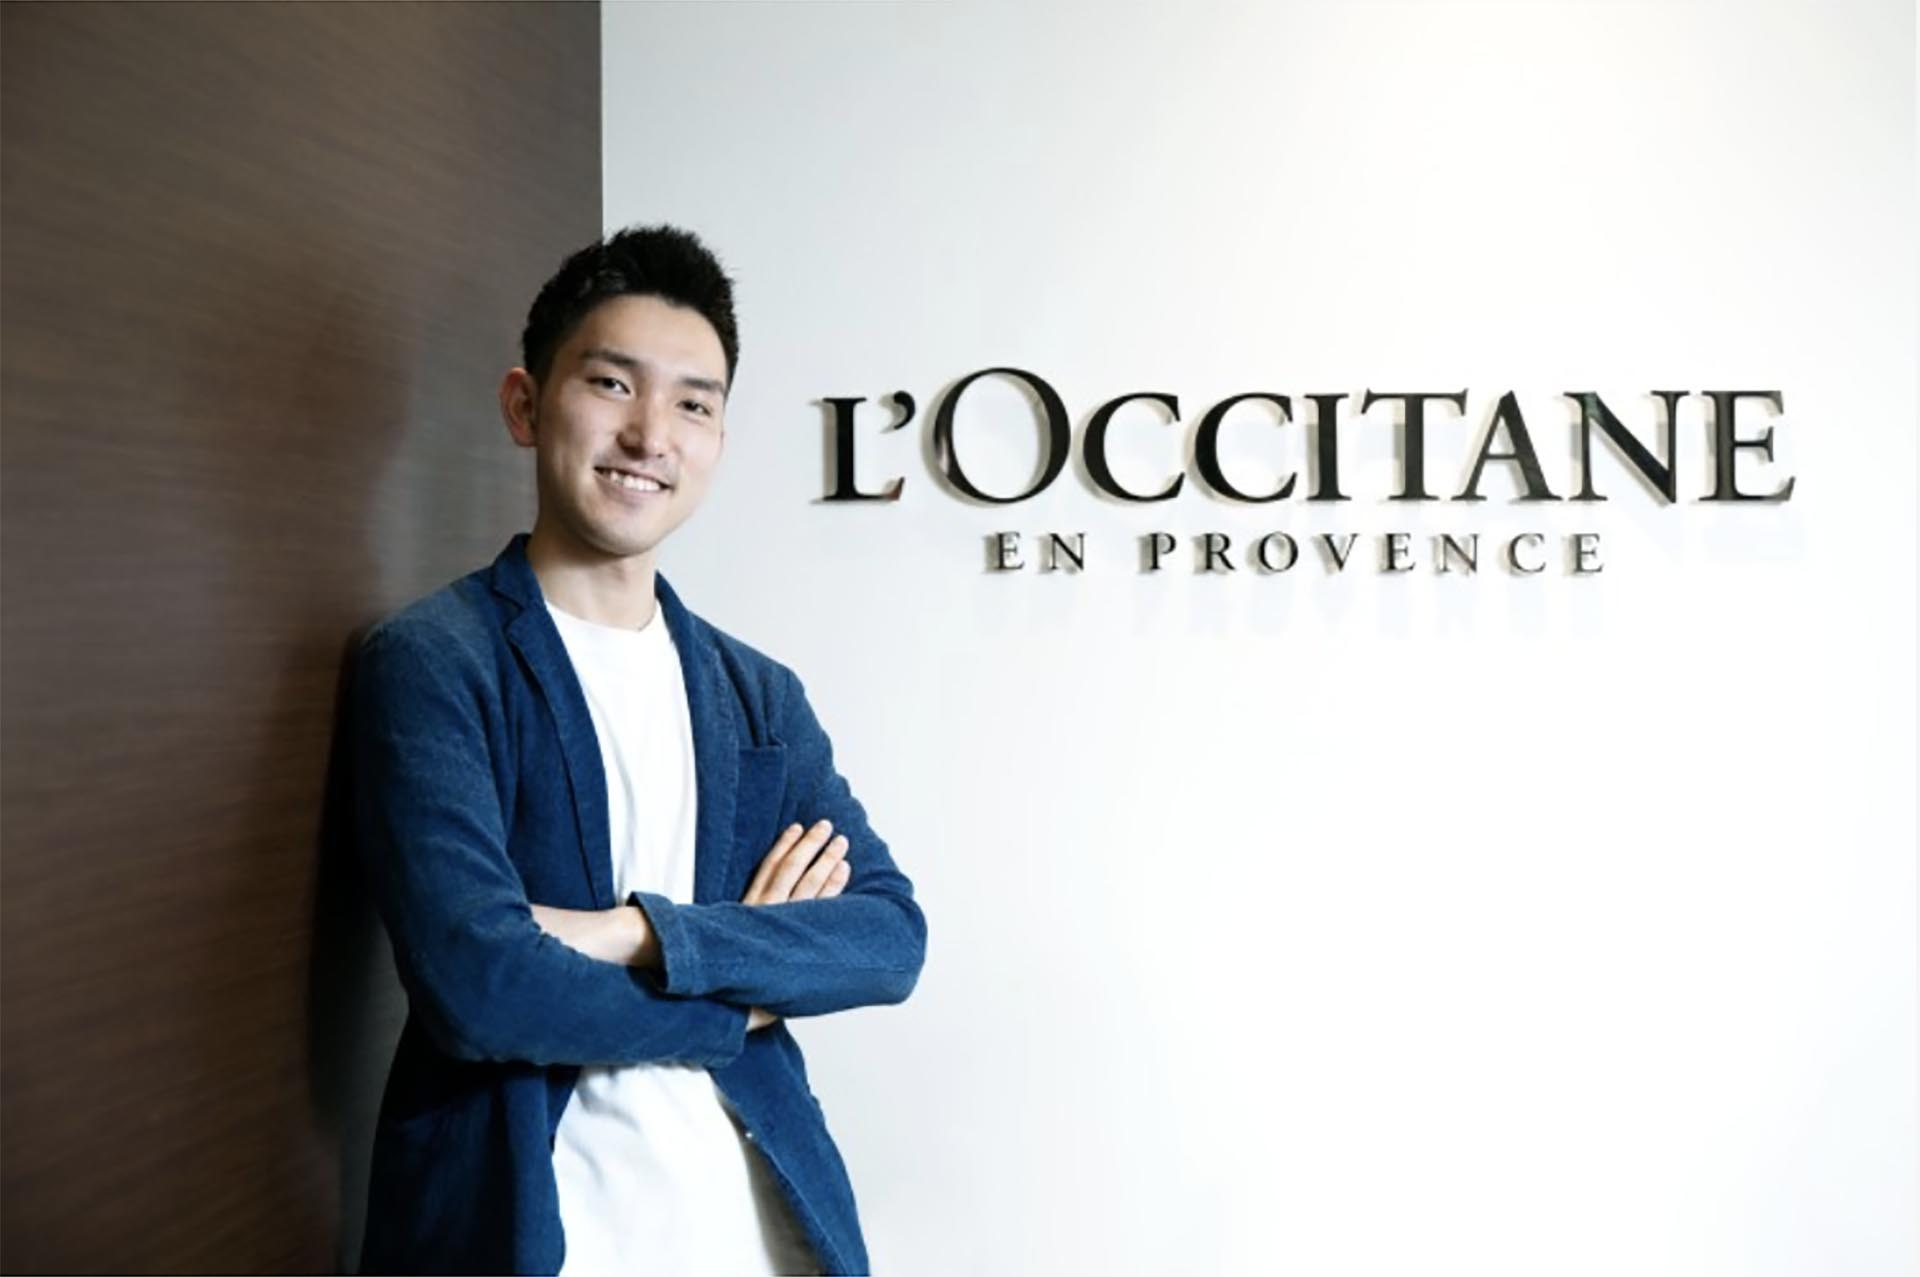 L'Occitane LINE Ads Case Study